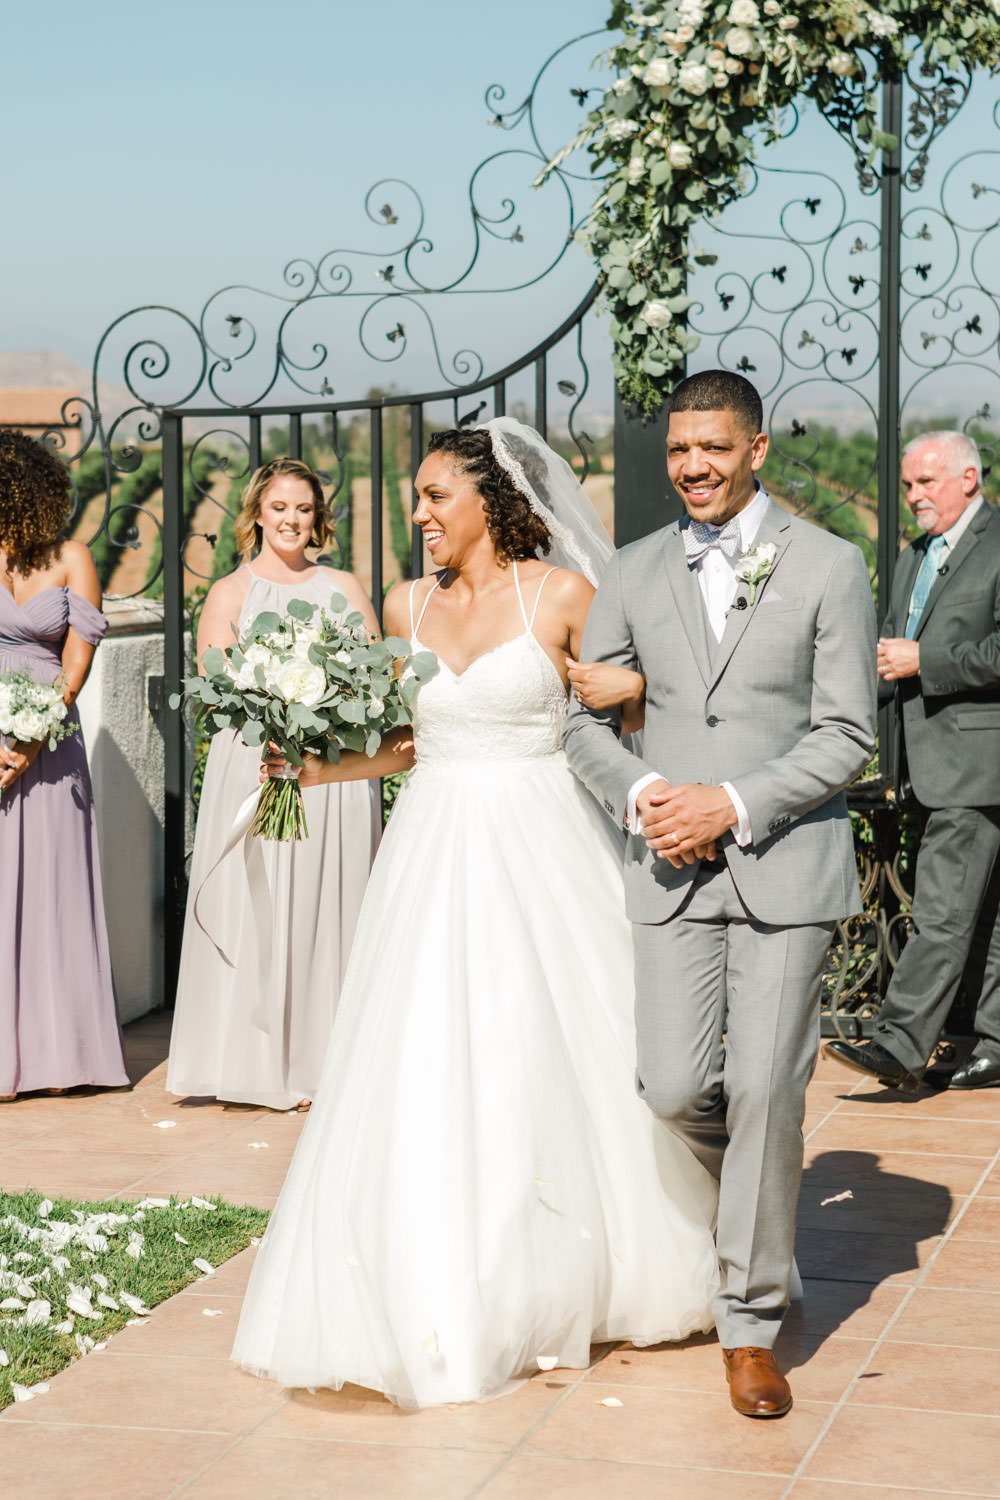 Ceremony with floral covered gate at Temecula Wedding at Villa De Amore, Cavin Elizabeth Photography